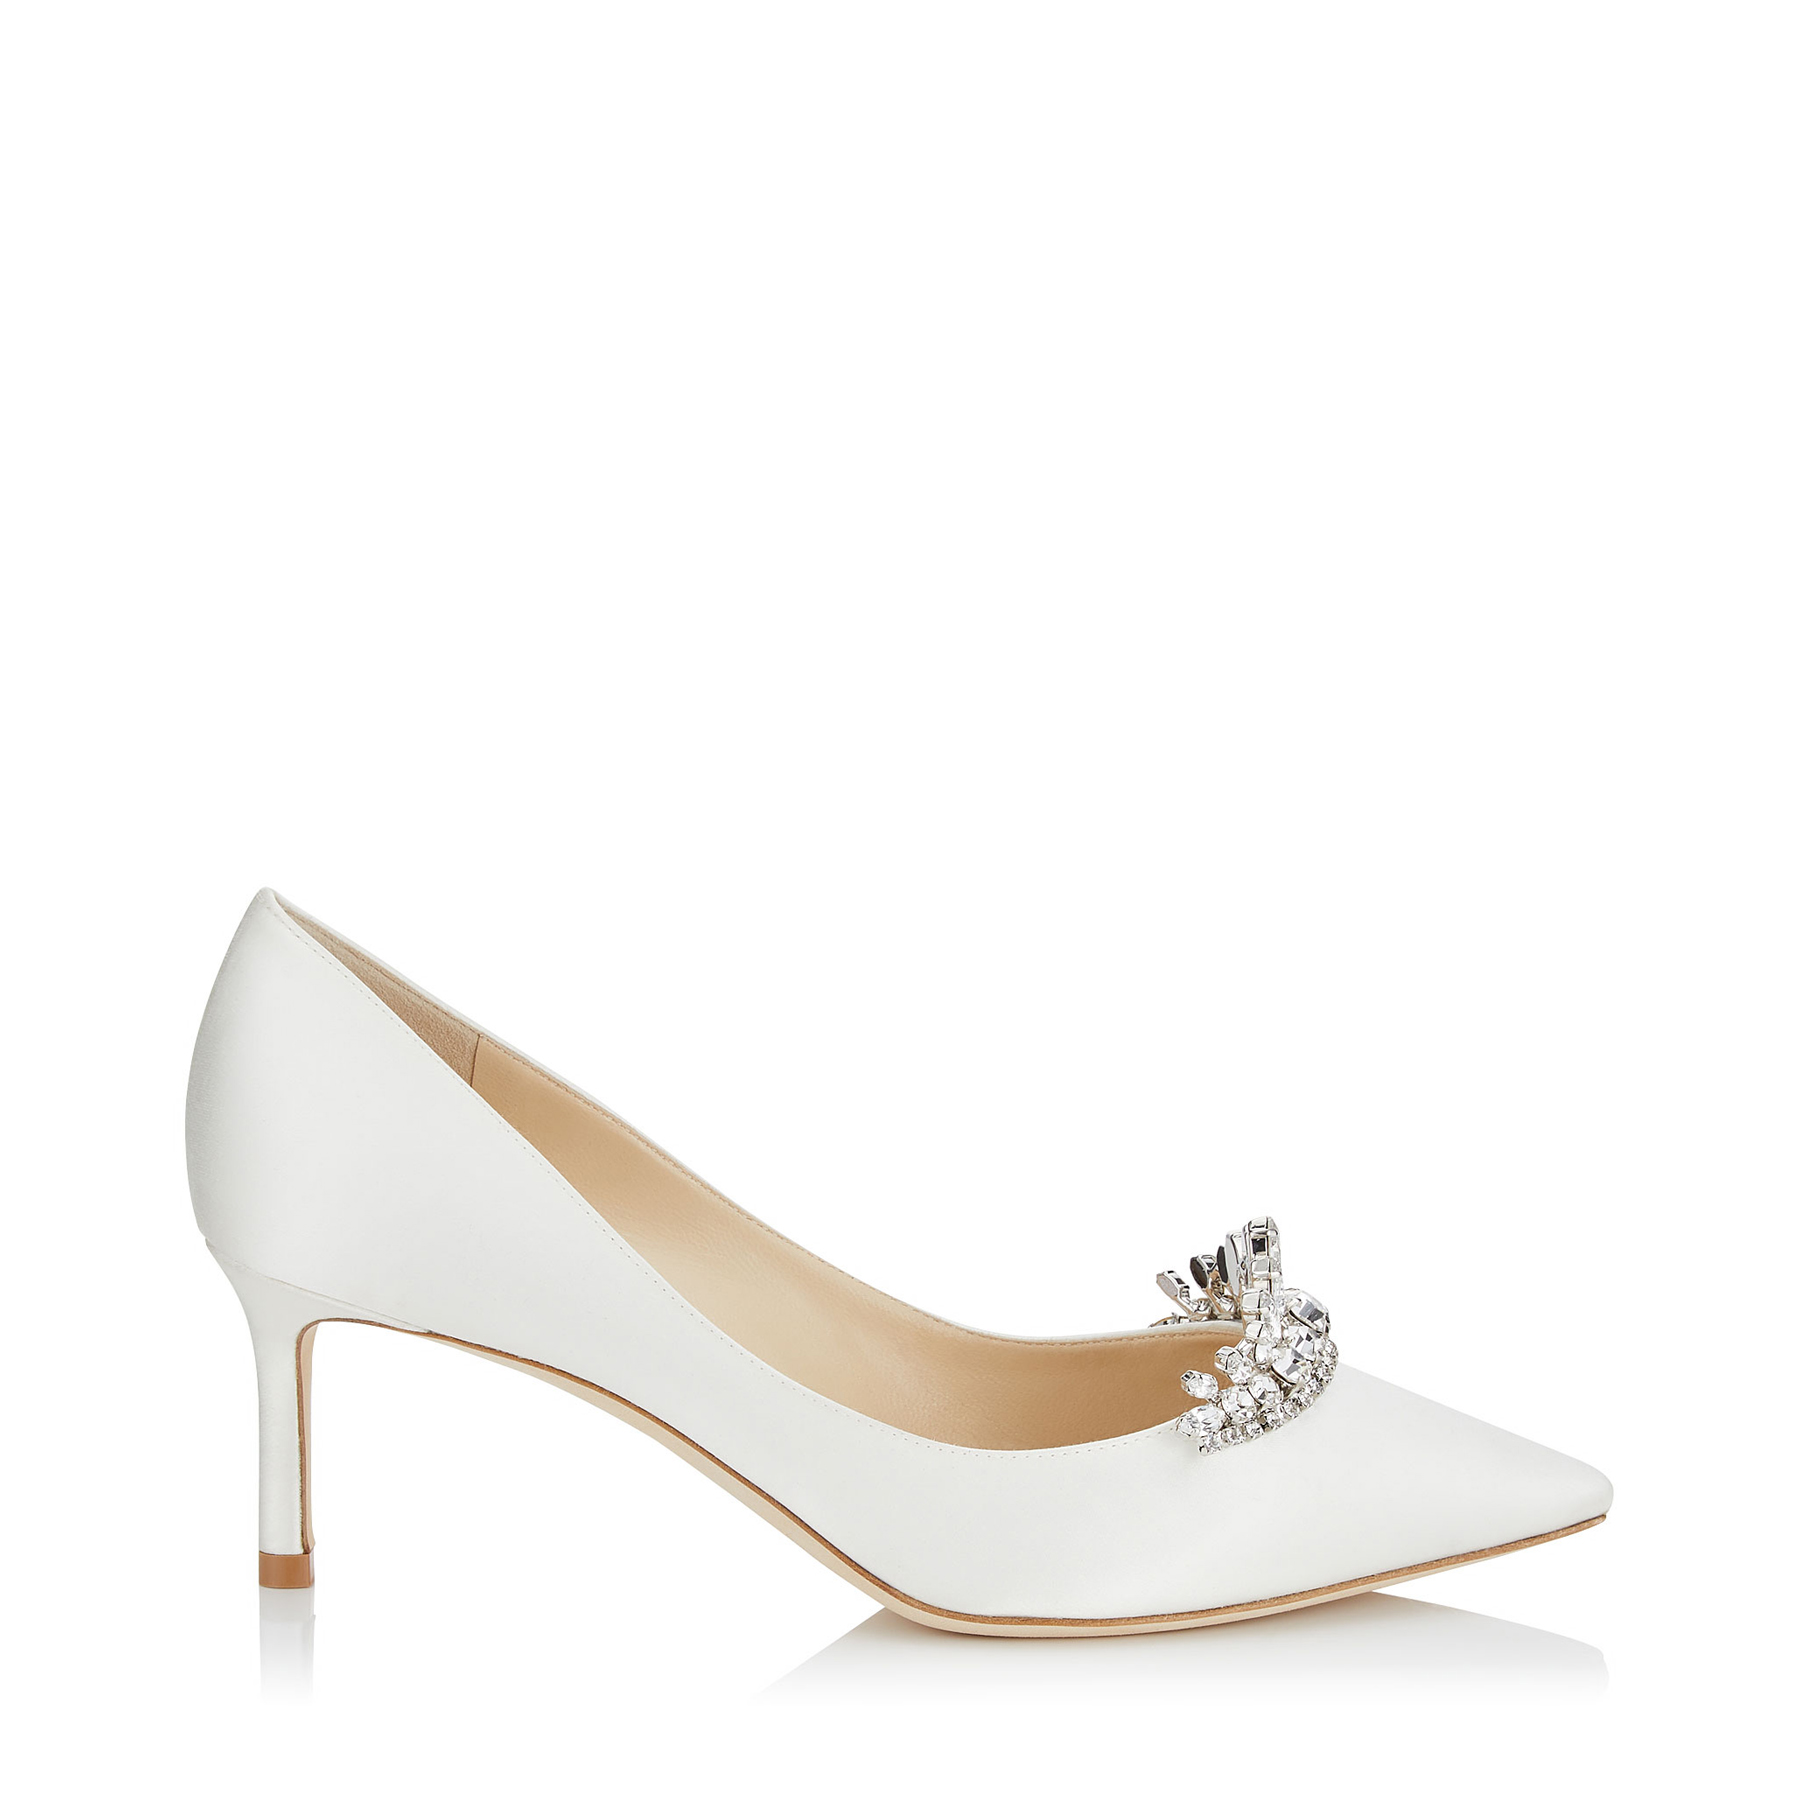 Ivory Satin Pointy Toe Pumps with